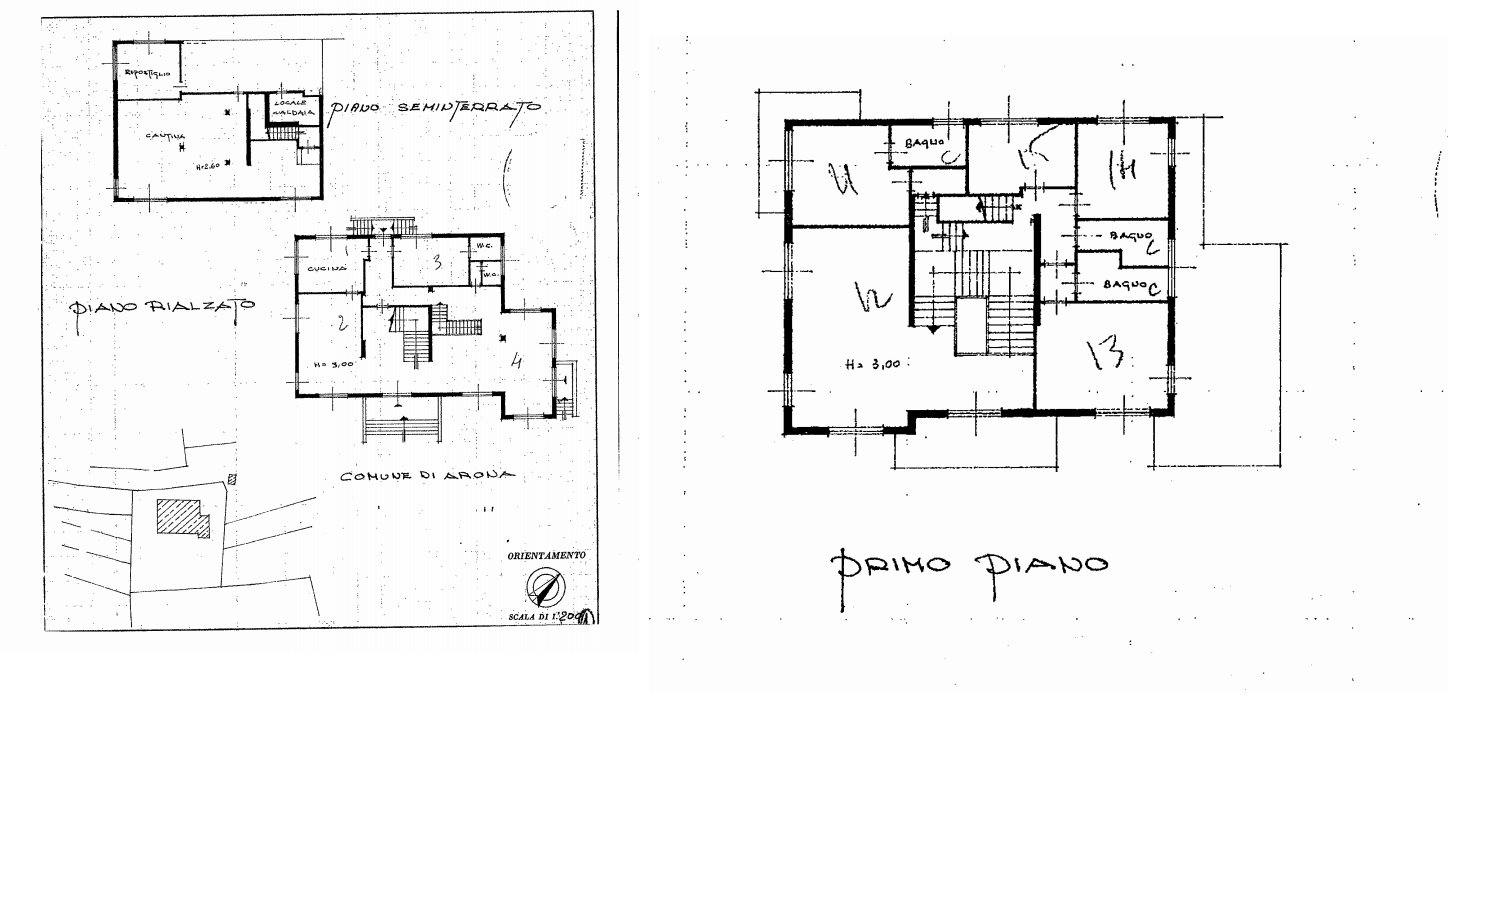 Property for sale in Arona - floor plan A